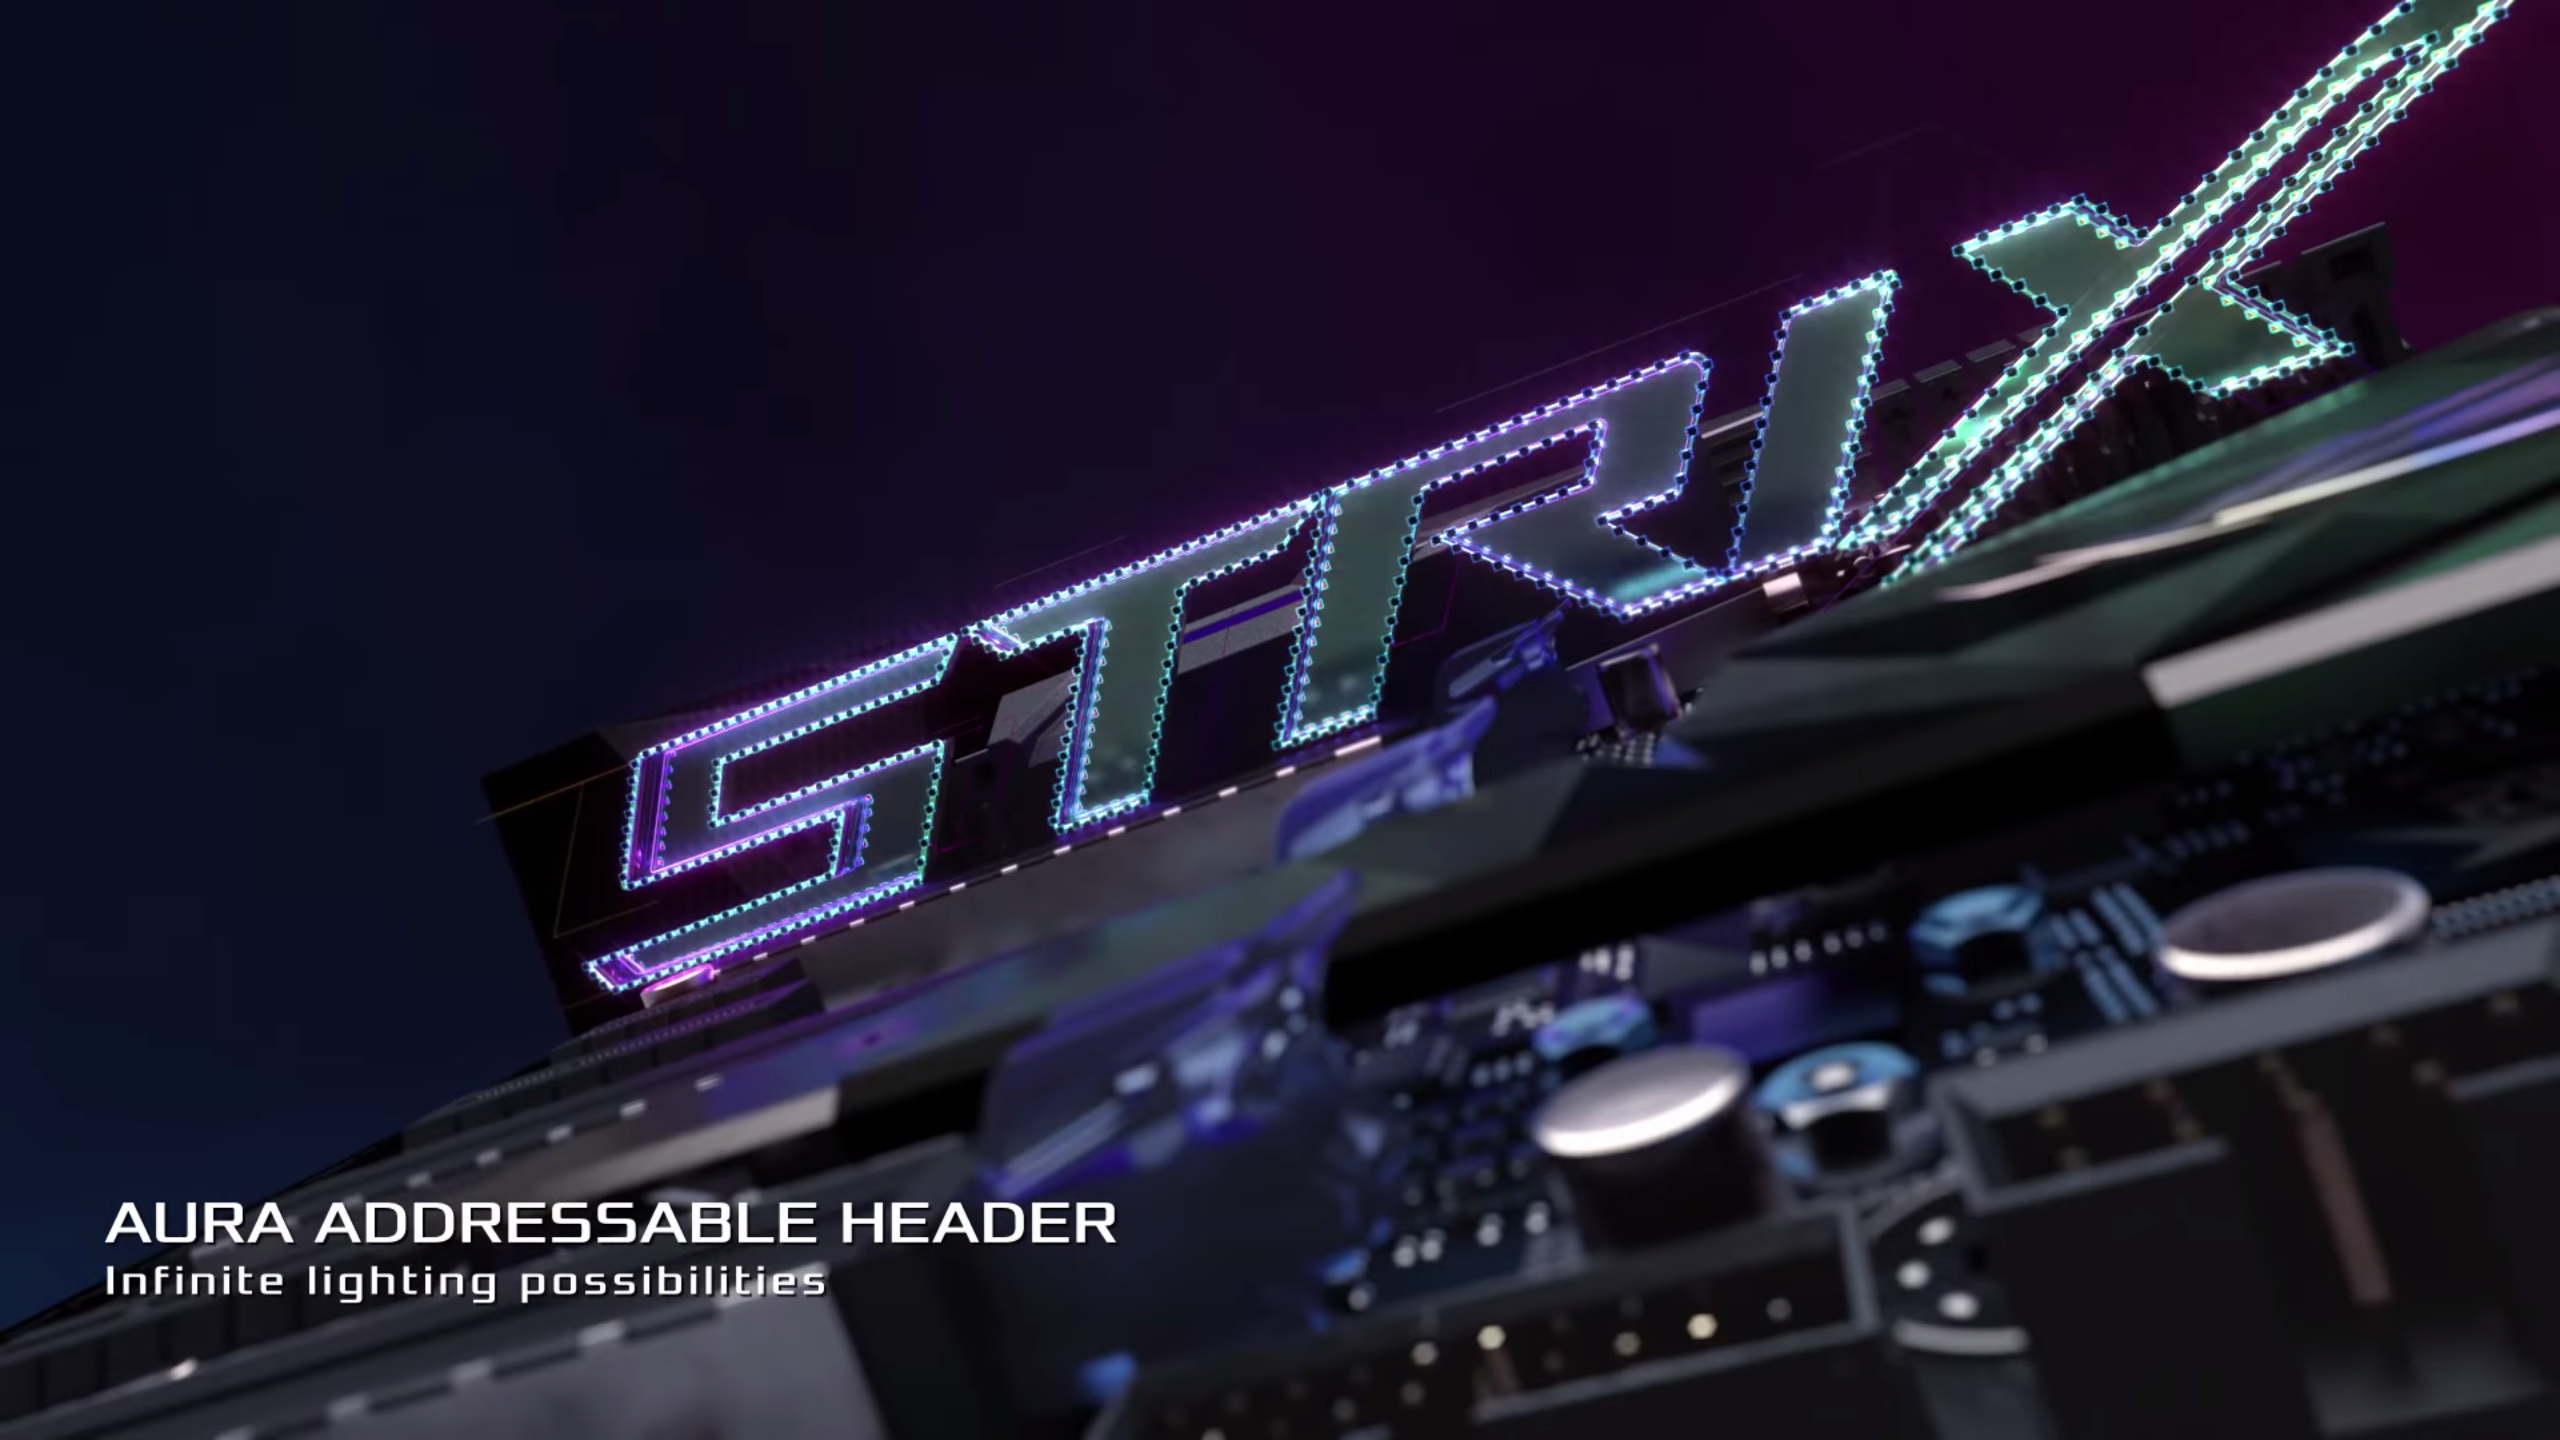 ASUS ROG STRIX X299-E Motherboard Is an Epic RGB Showcase